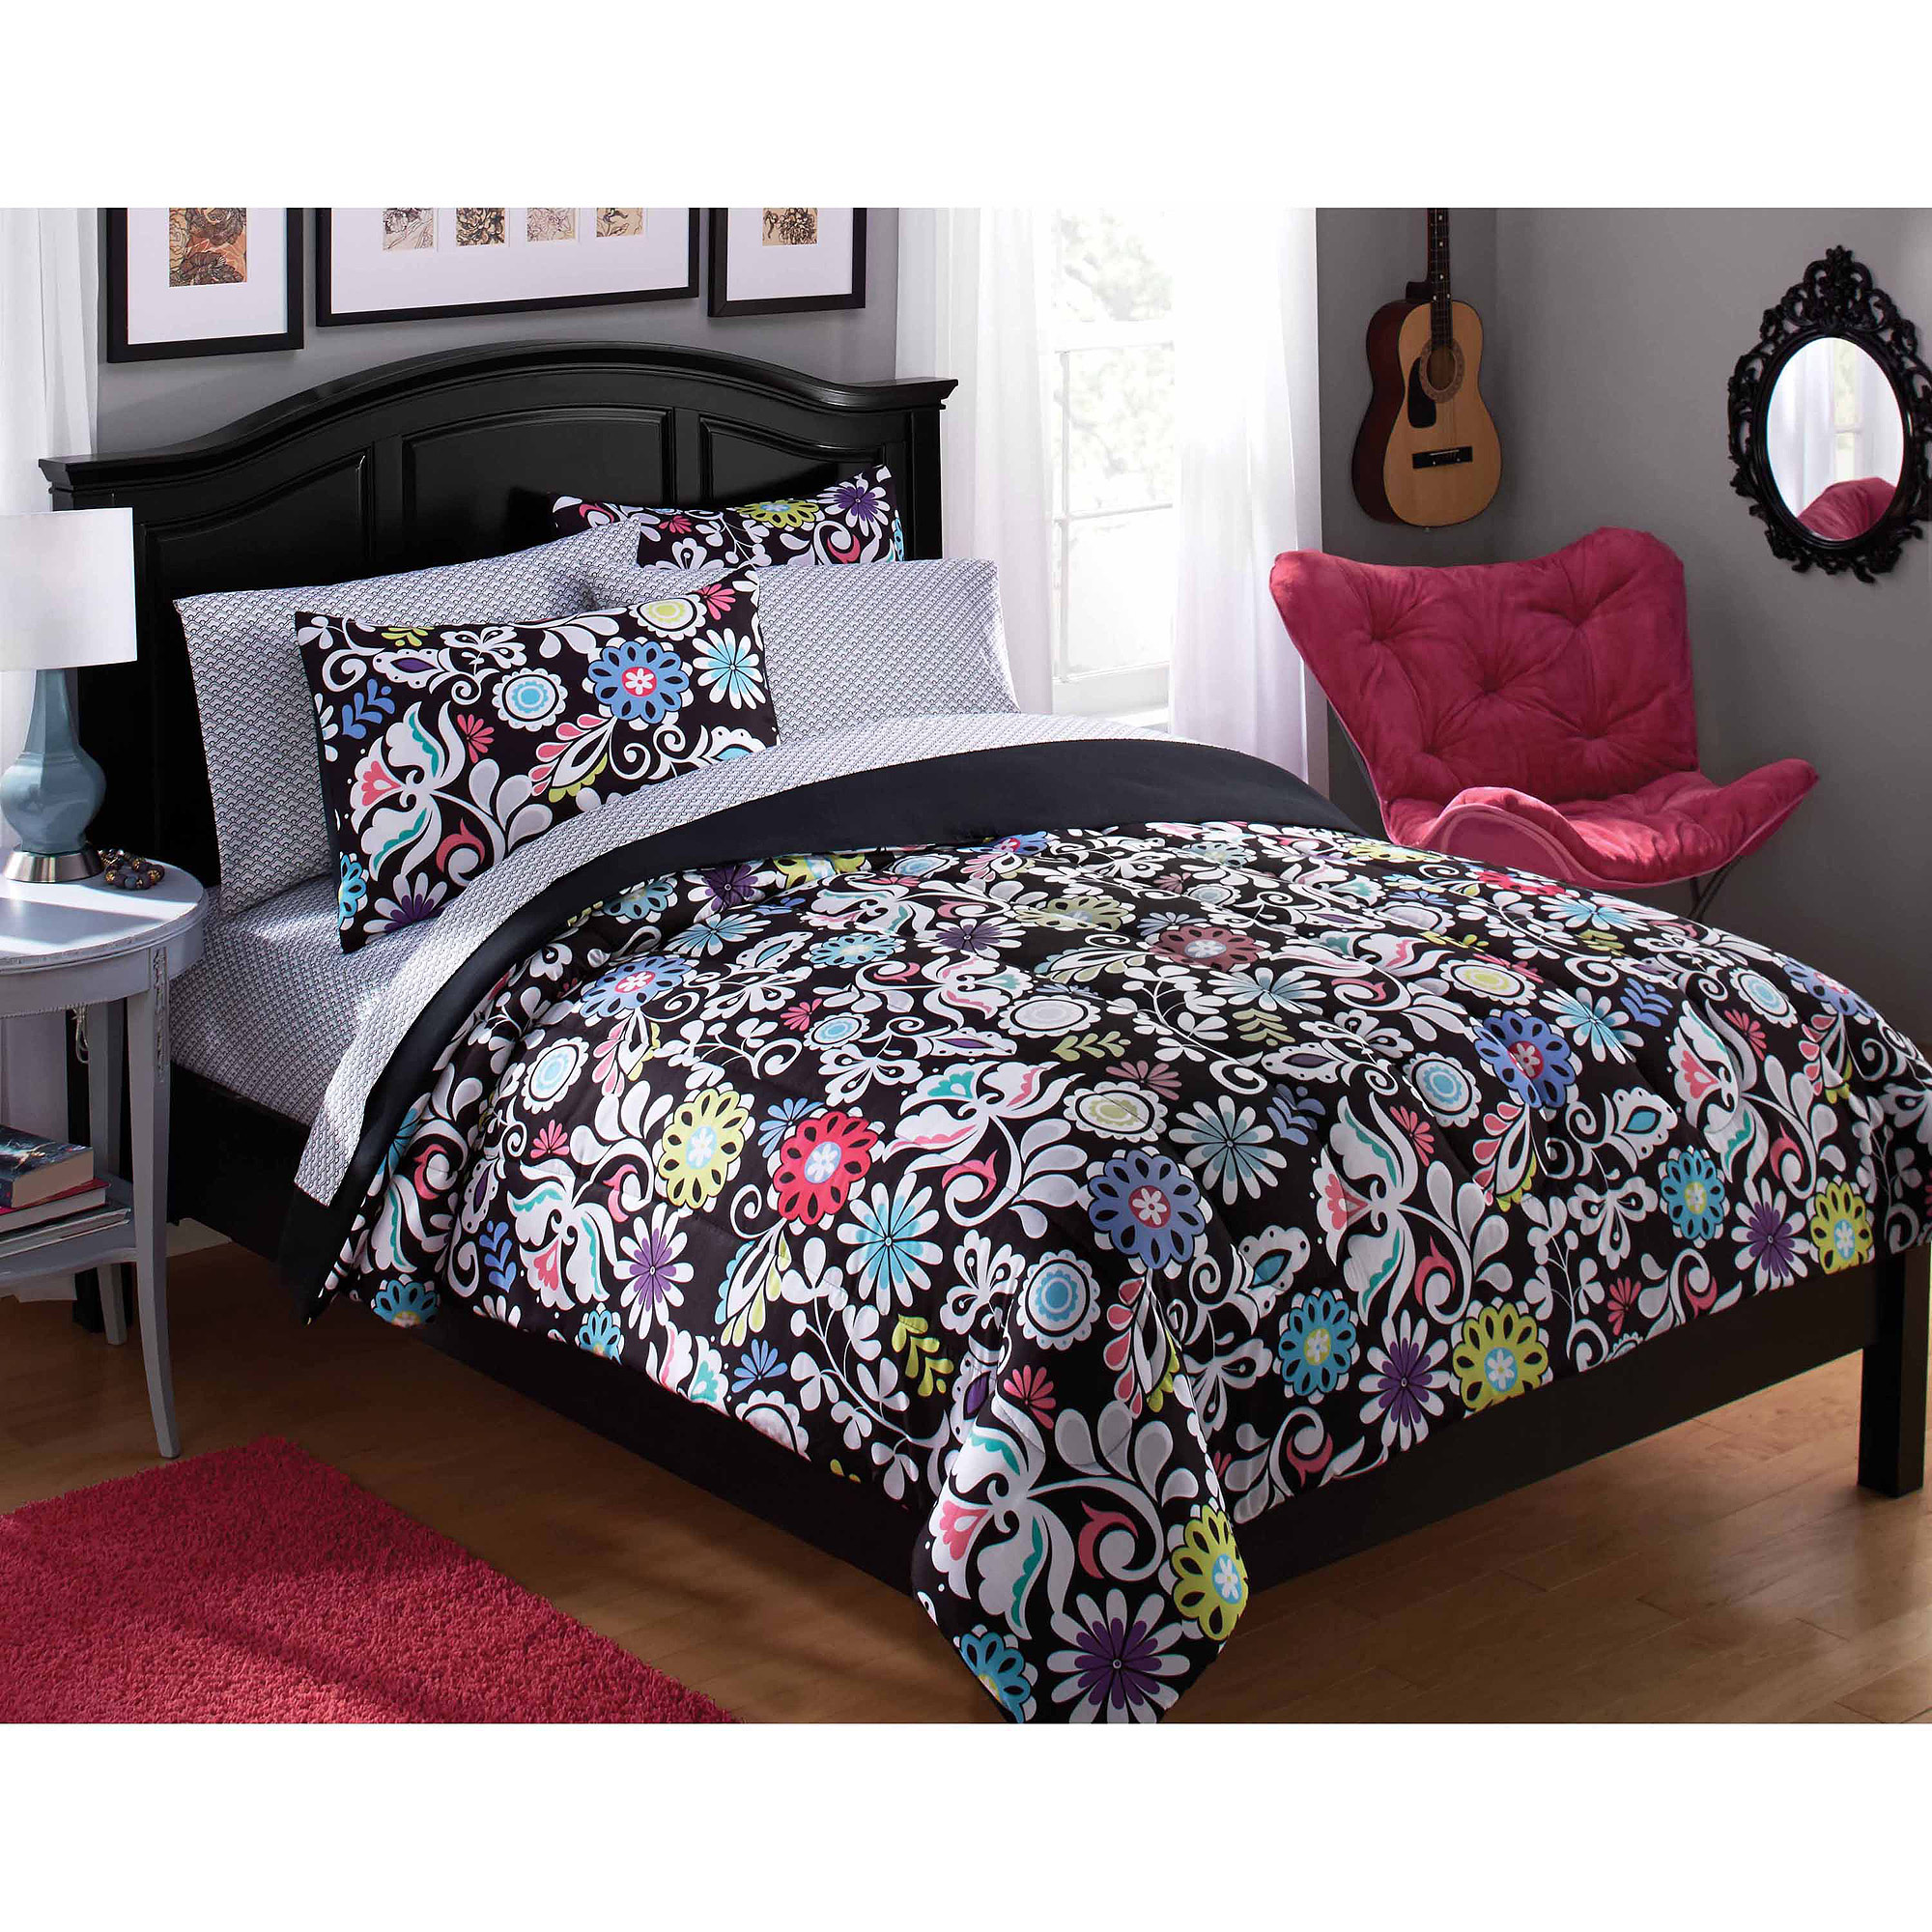 your zone paradise bed in a bag, black